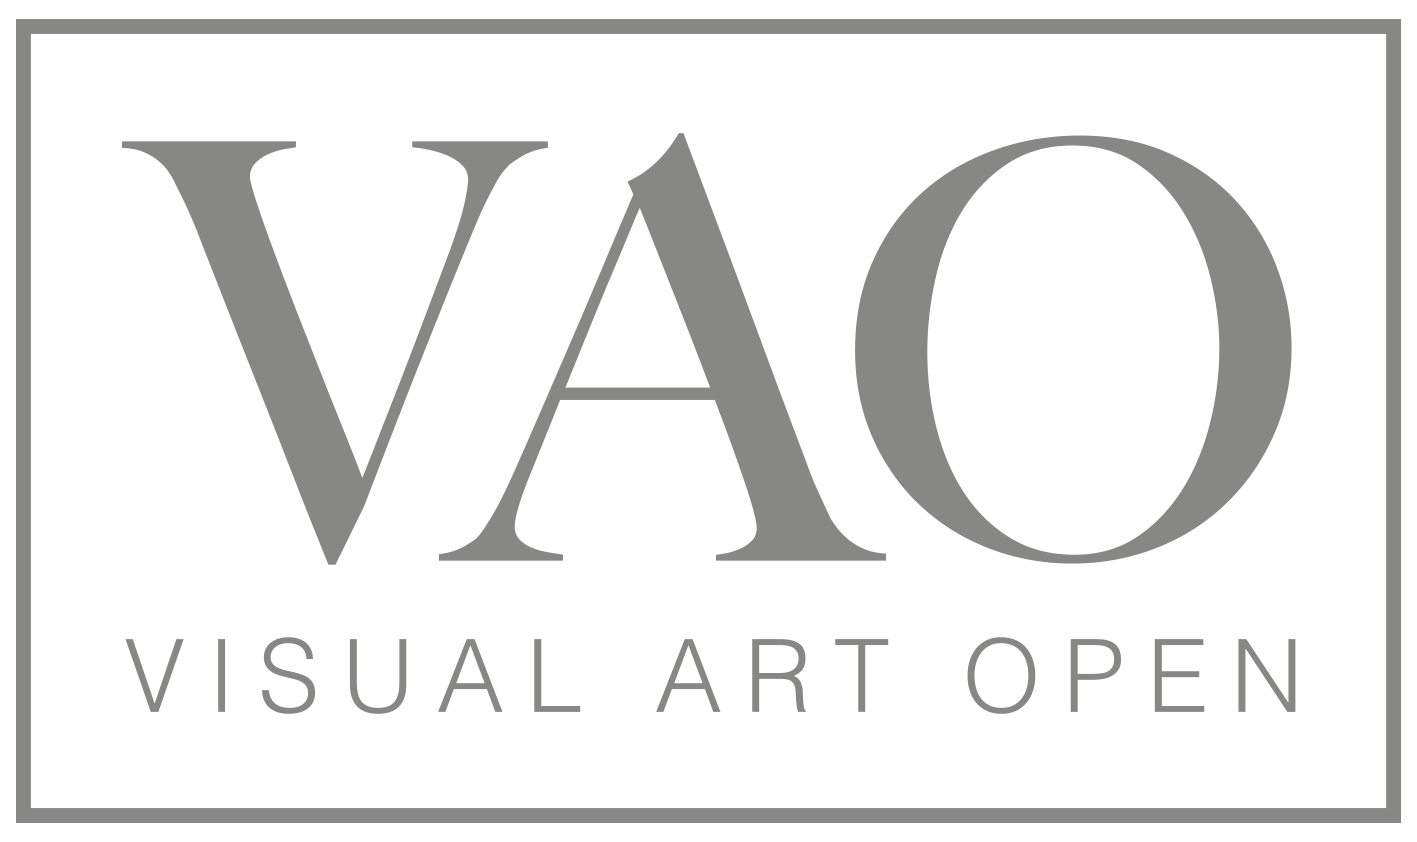 Visual Art Open 2019 Awards - logo